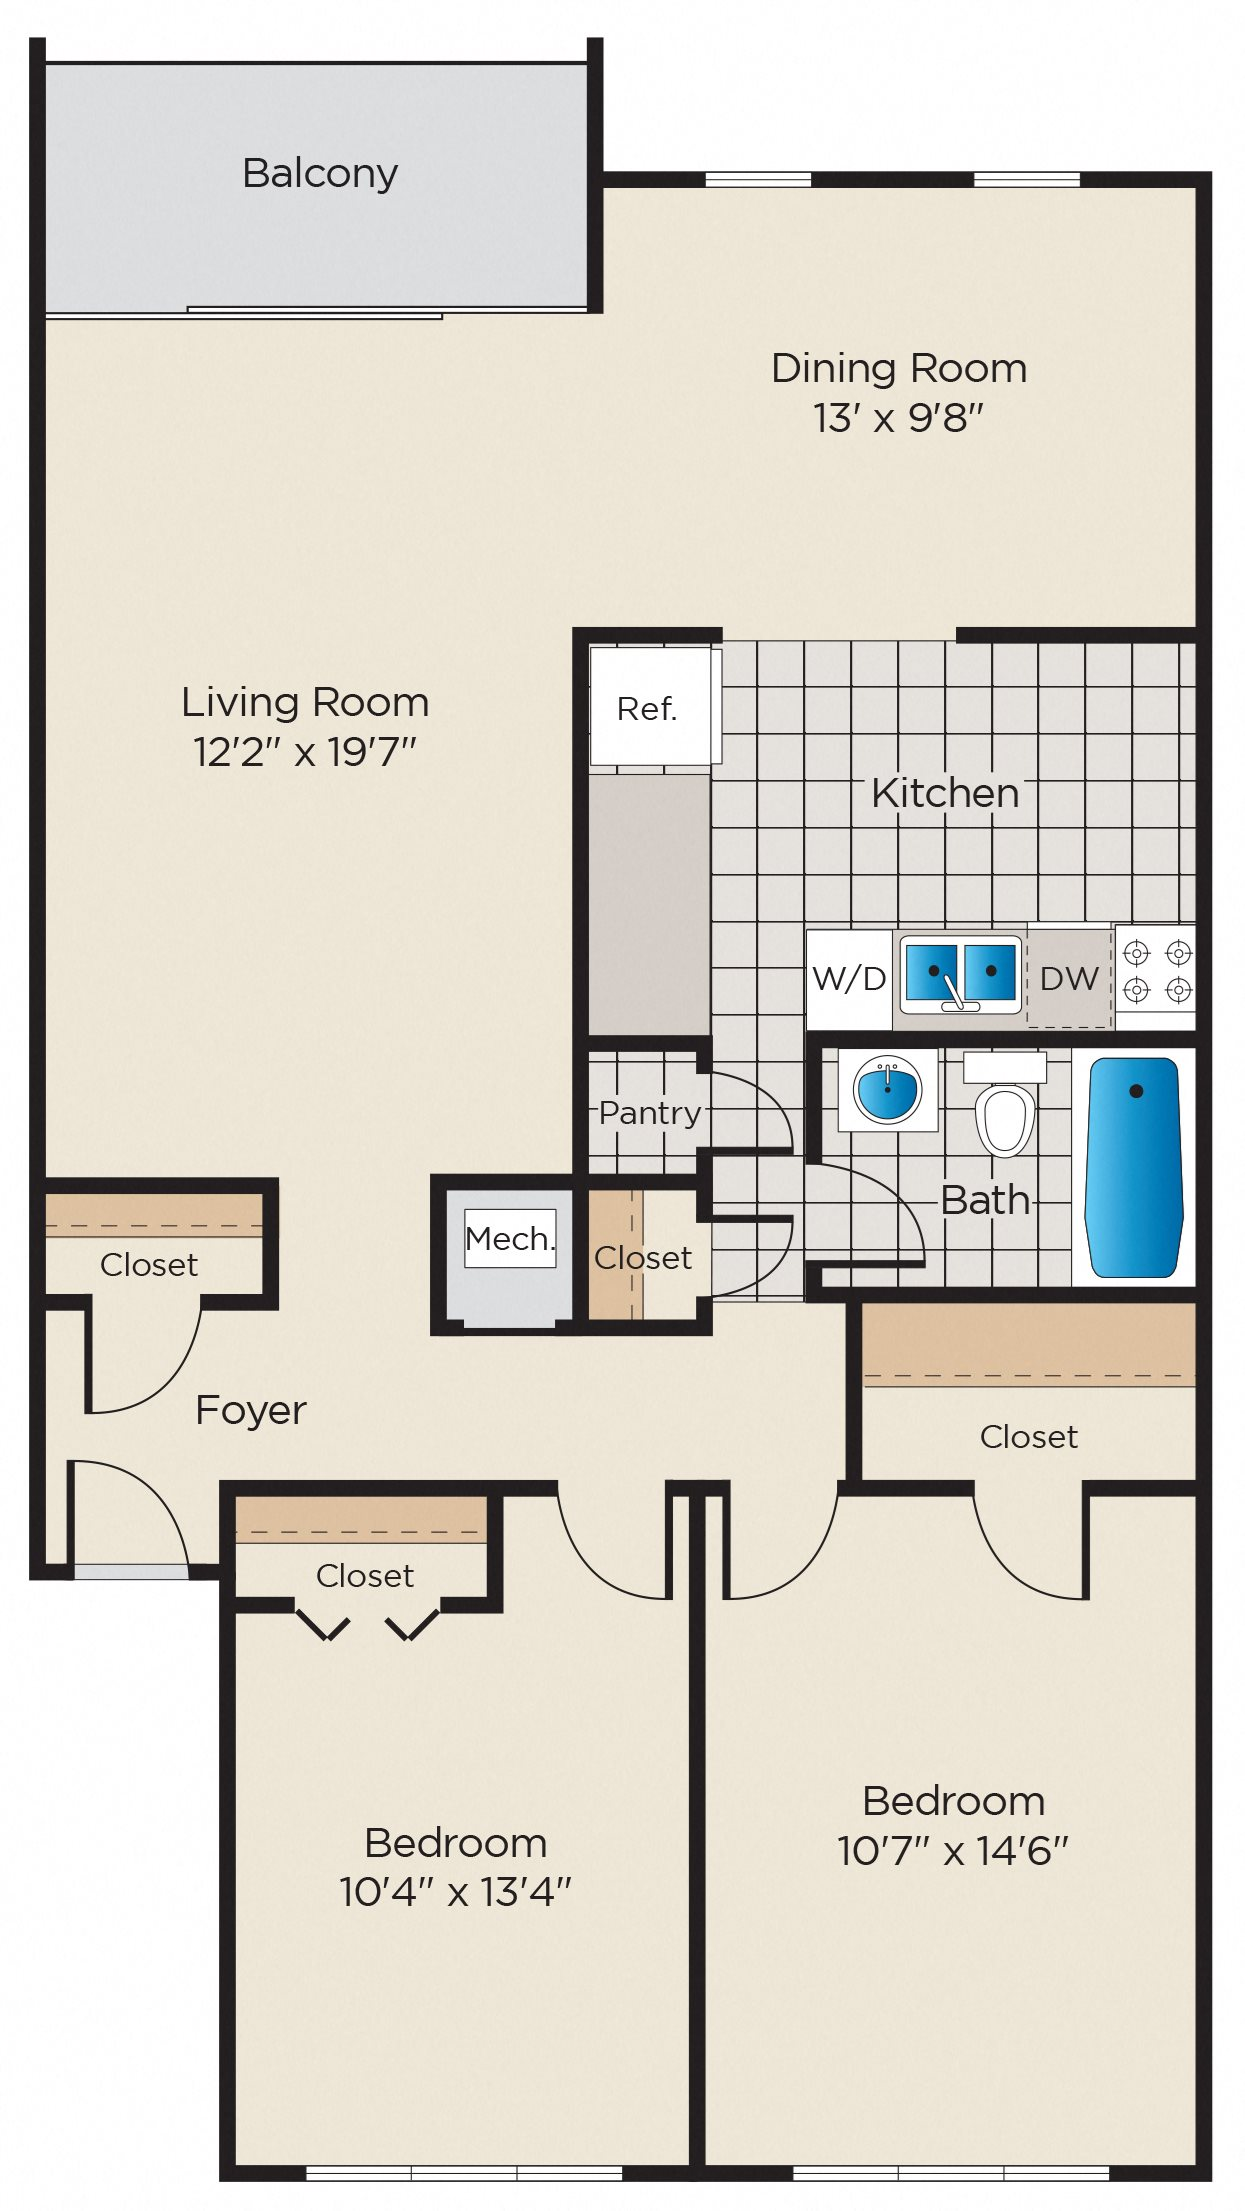 B1: Classic or Upgraded Finish Package Floor Plan 5